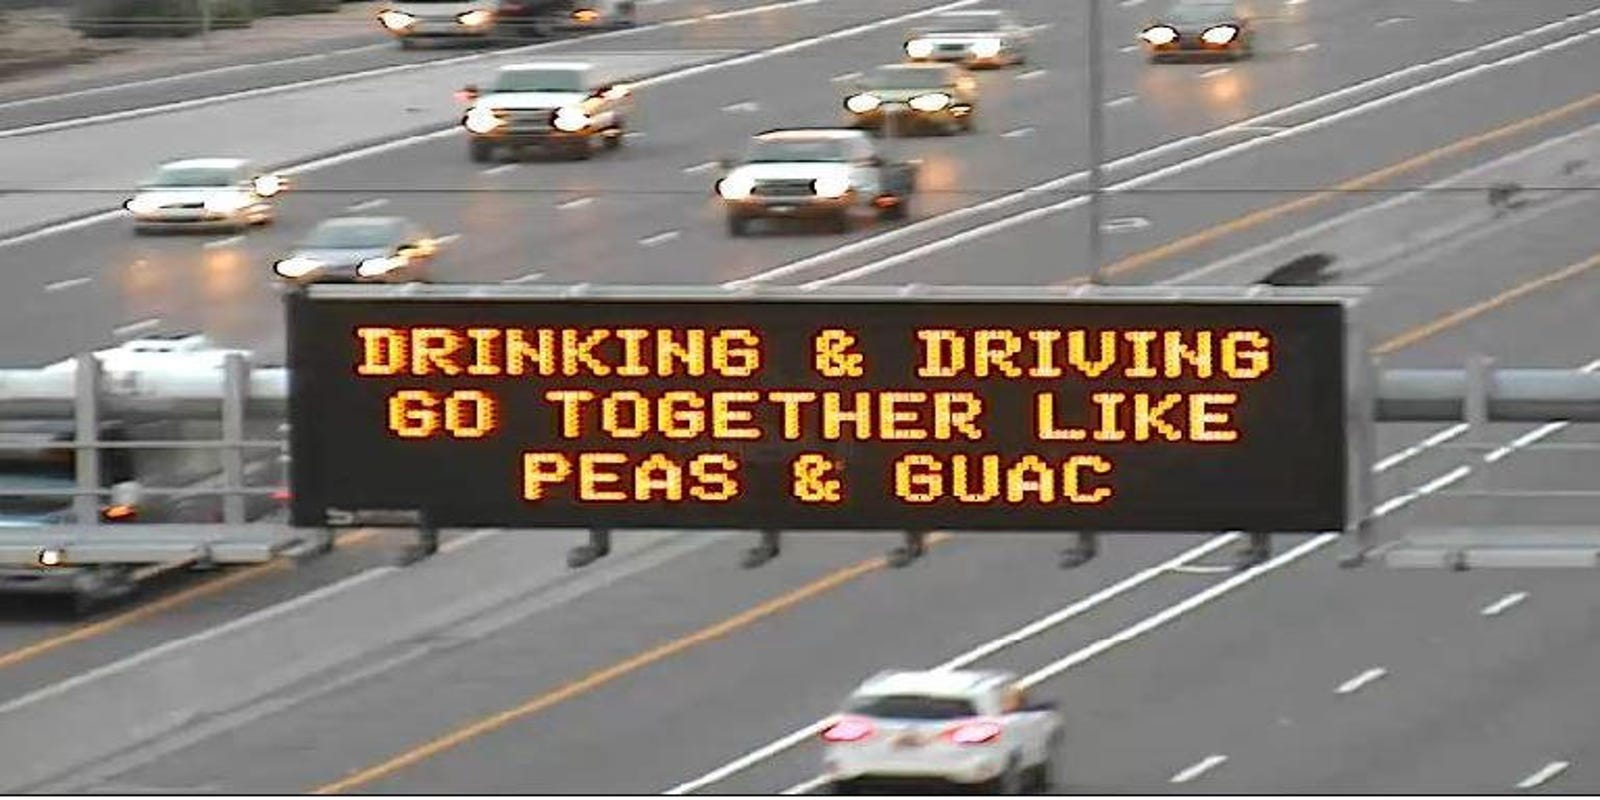 Time to get clever: Submit your best traffic safety messages to ADOT's sign contest